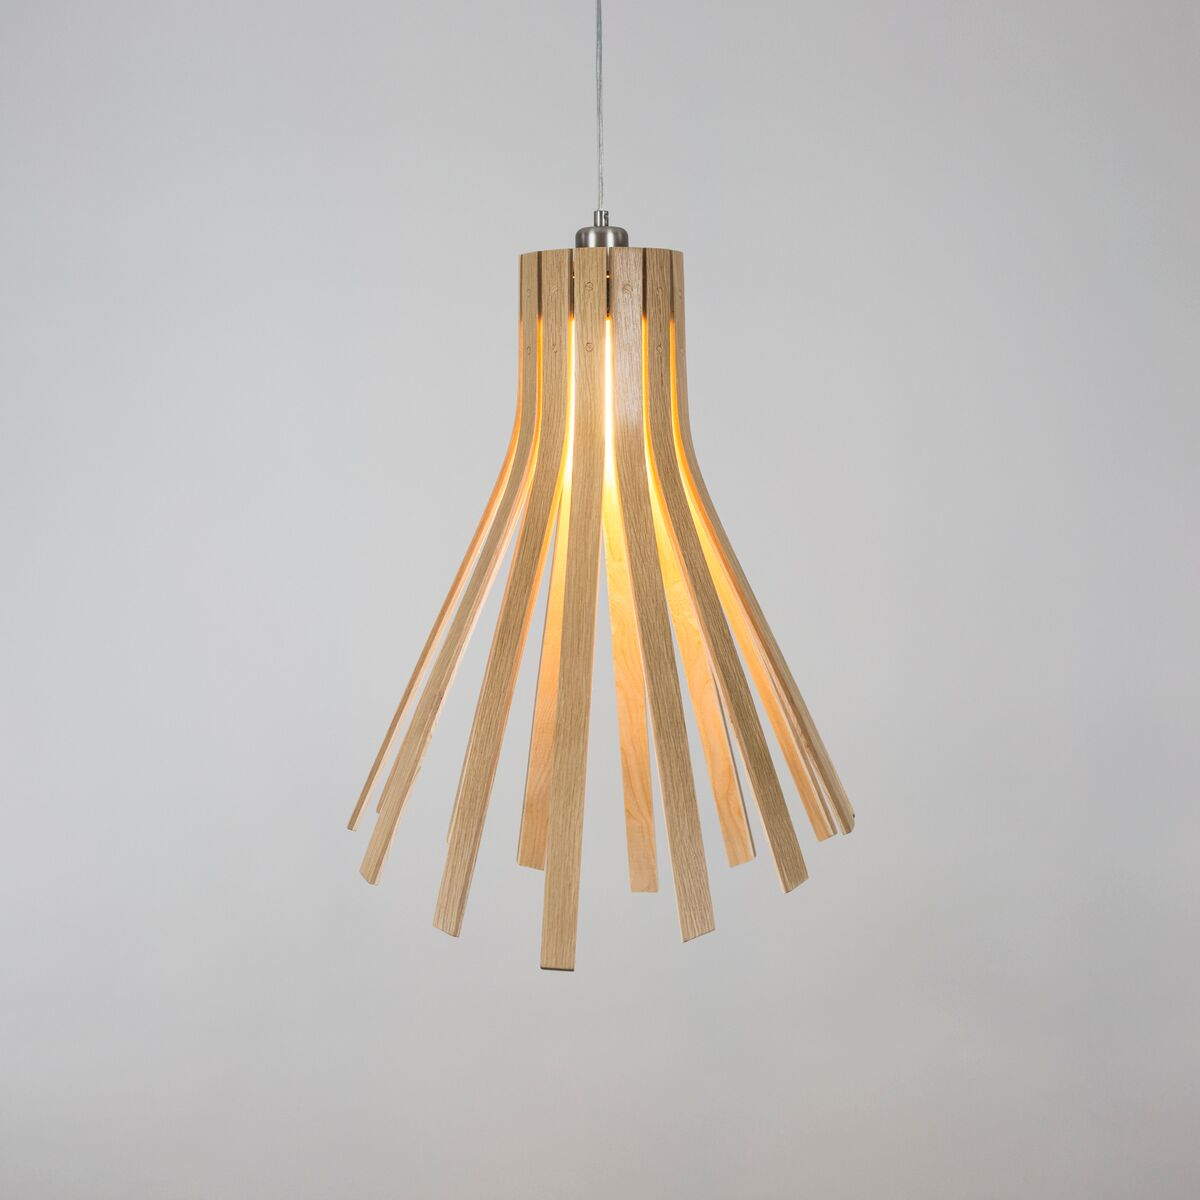 Wooden Lighting Pendants 20 Simple And Sculptural Wooden Pendant Lights